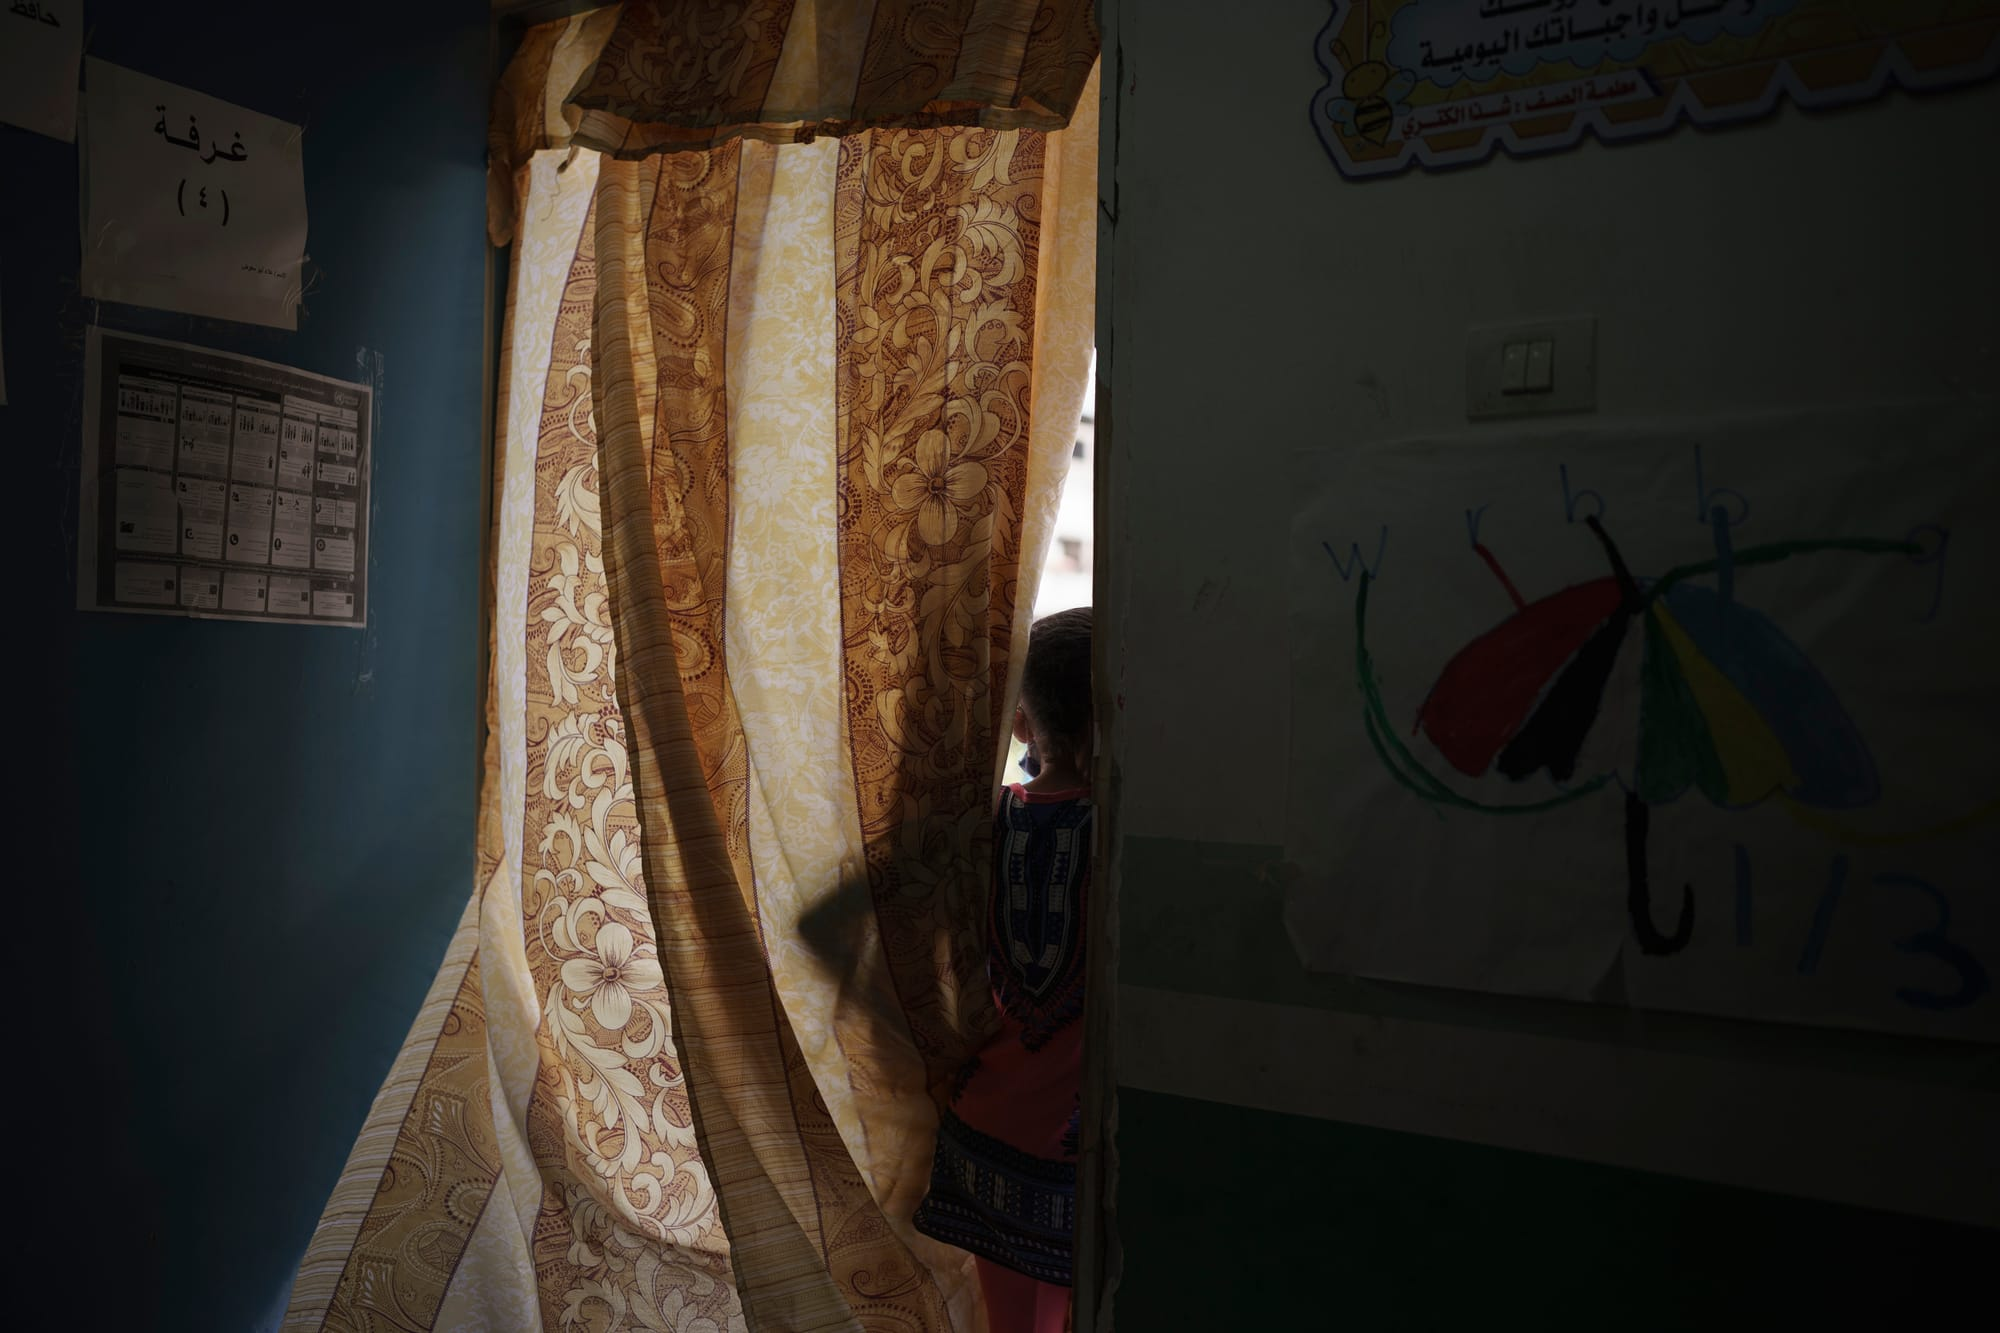 A 10-year-old girl looks outside from the window of a classroom in a school run by the U.N. where her family took shelter after their home was destroyed during the recent 11-day war, in Jabaliya refugee camp.